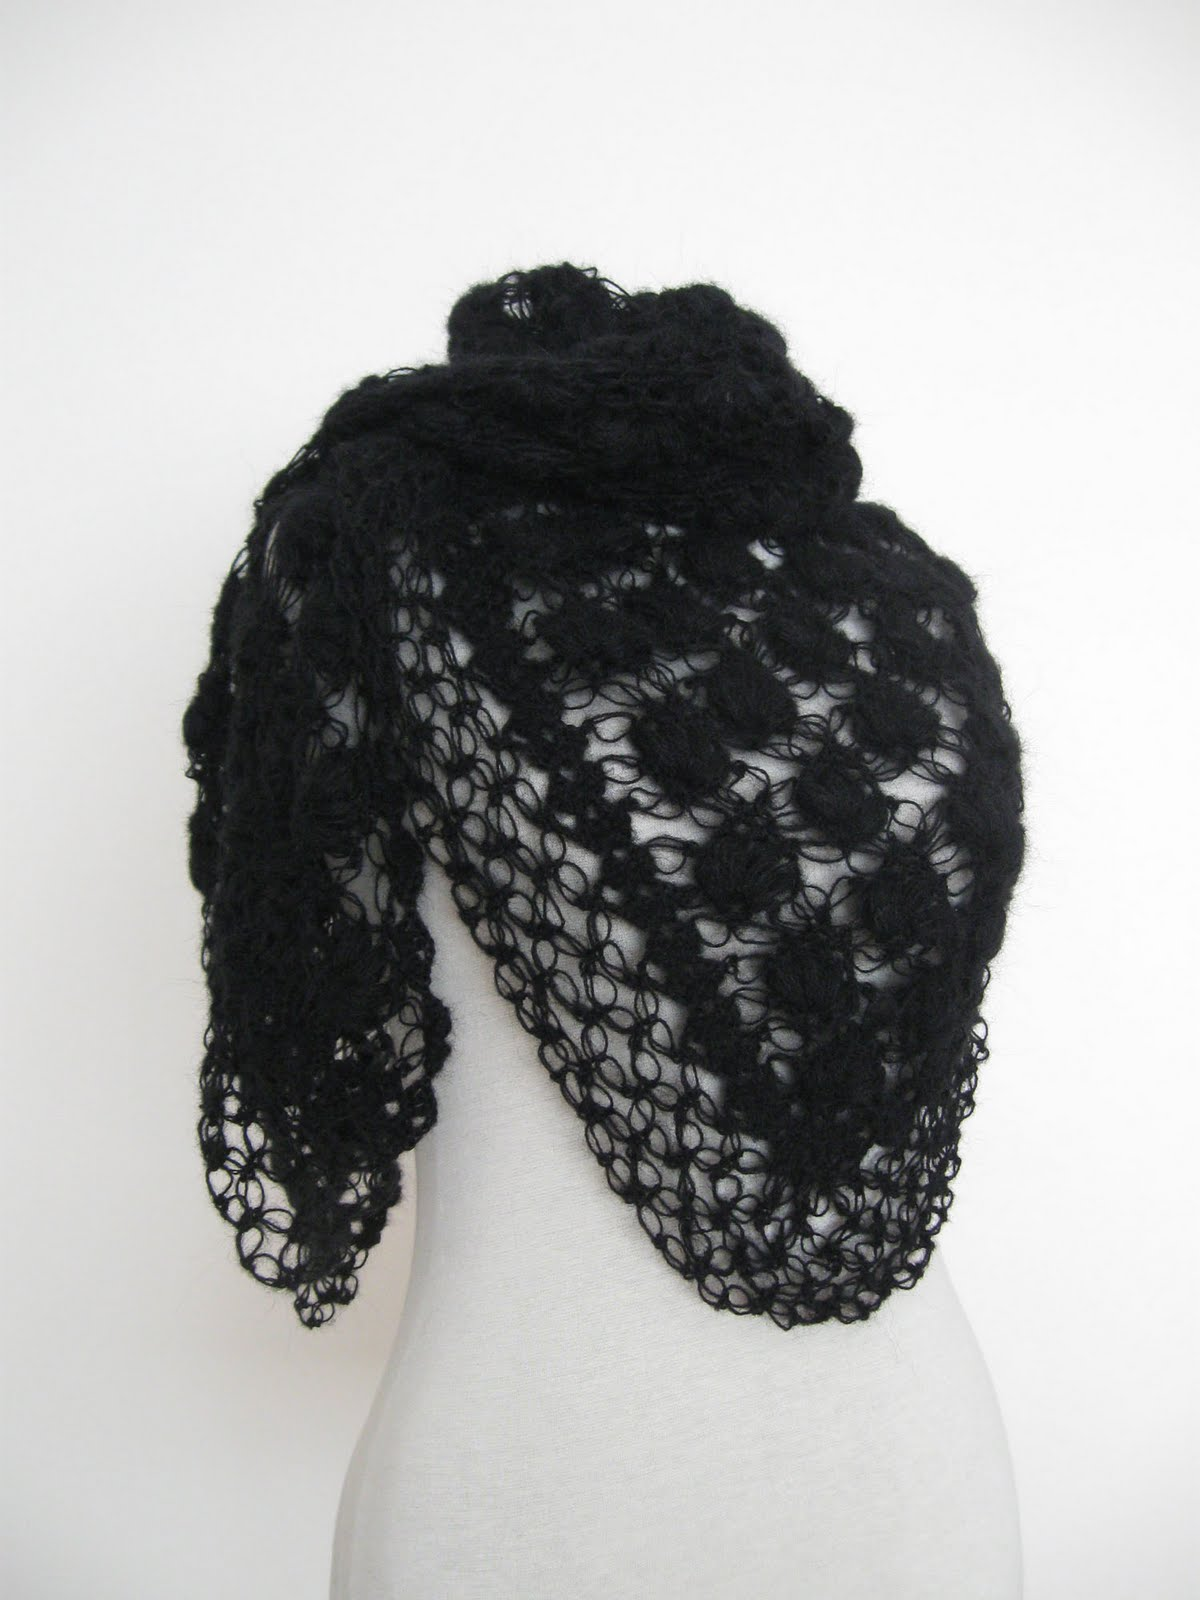 Knitting and beading wedding bridal accessories and free pattern this black hand crocheted unique design shawl has been made from quality soft mohair yarn the finished shape is triangular the best thing is that the bankloansurffo Images